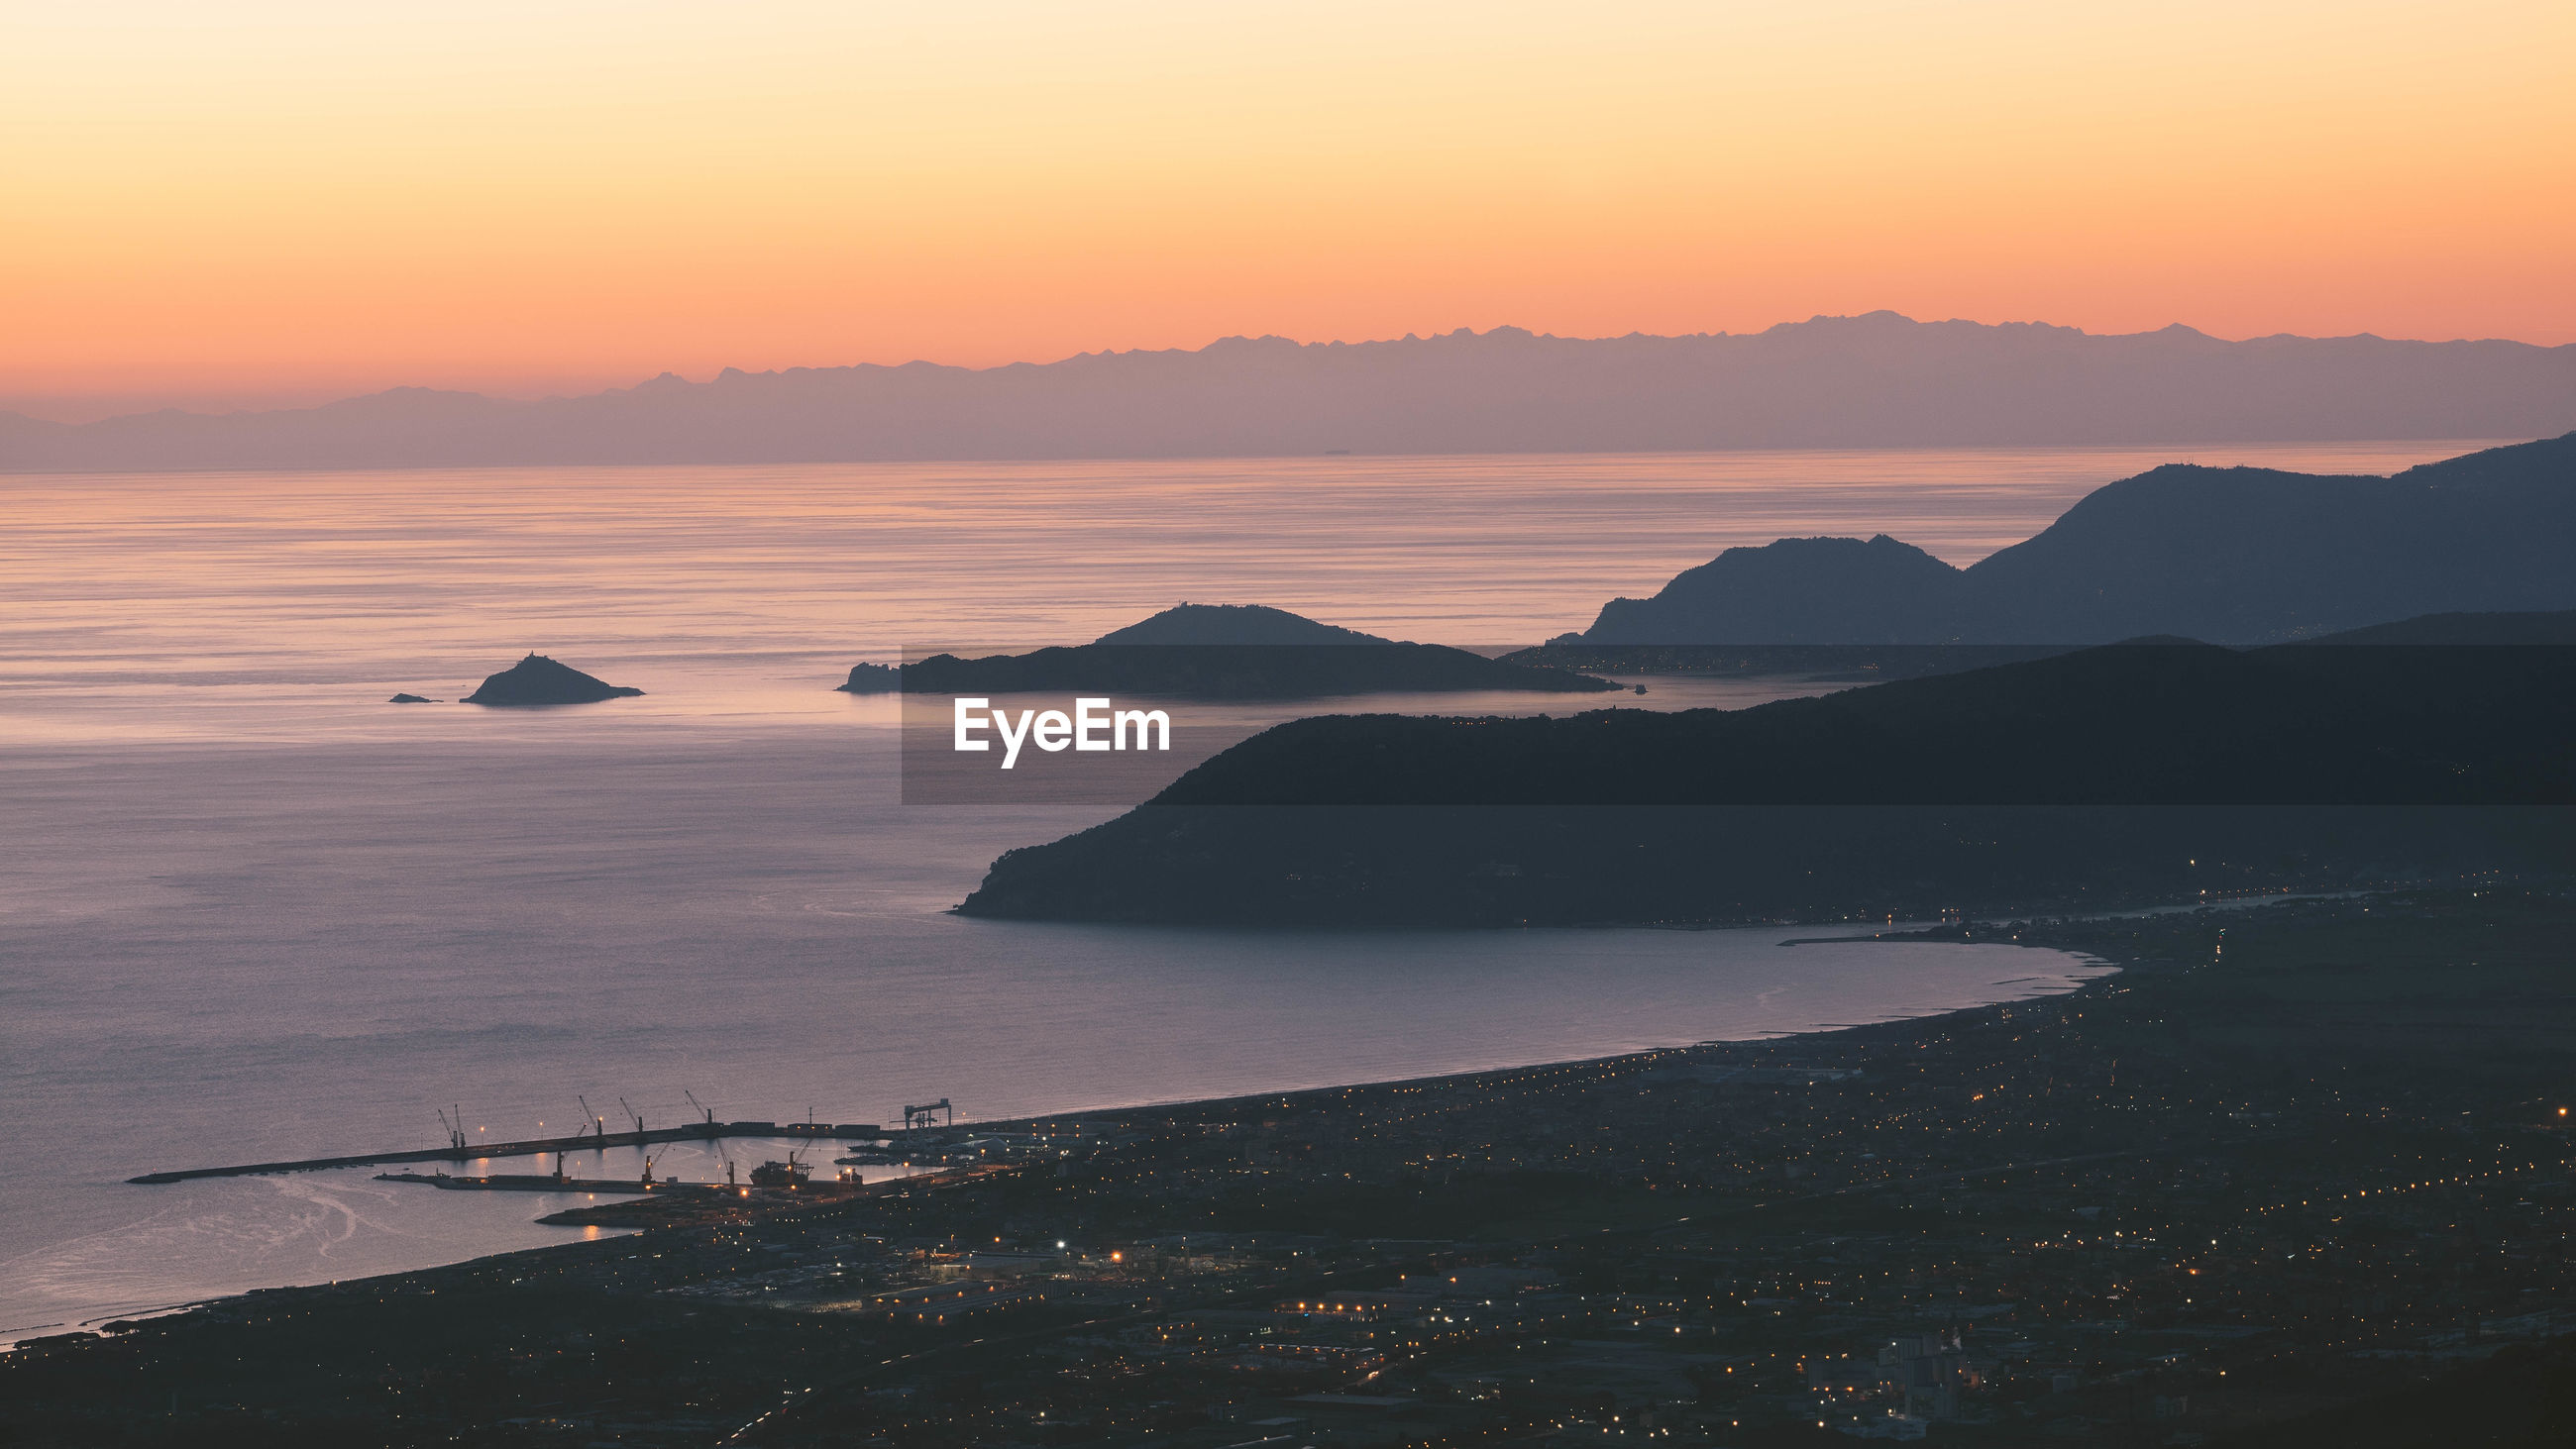 Scenic view of coastline against sky during sunset